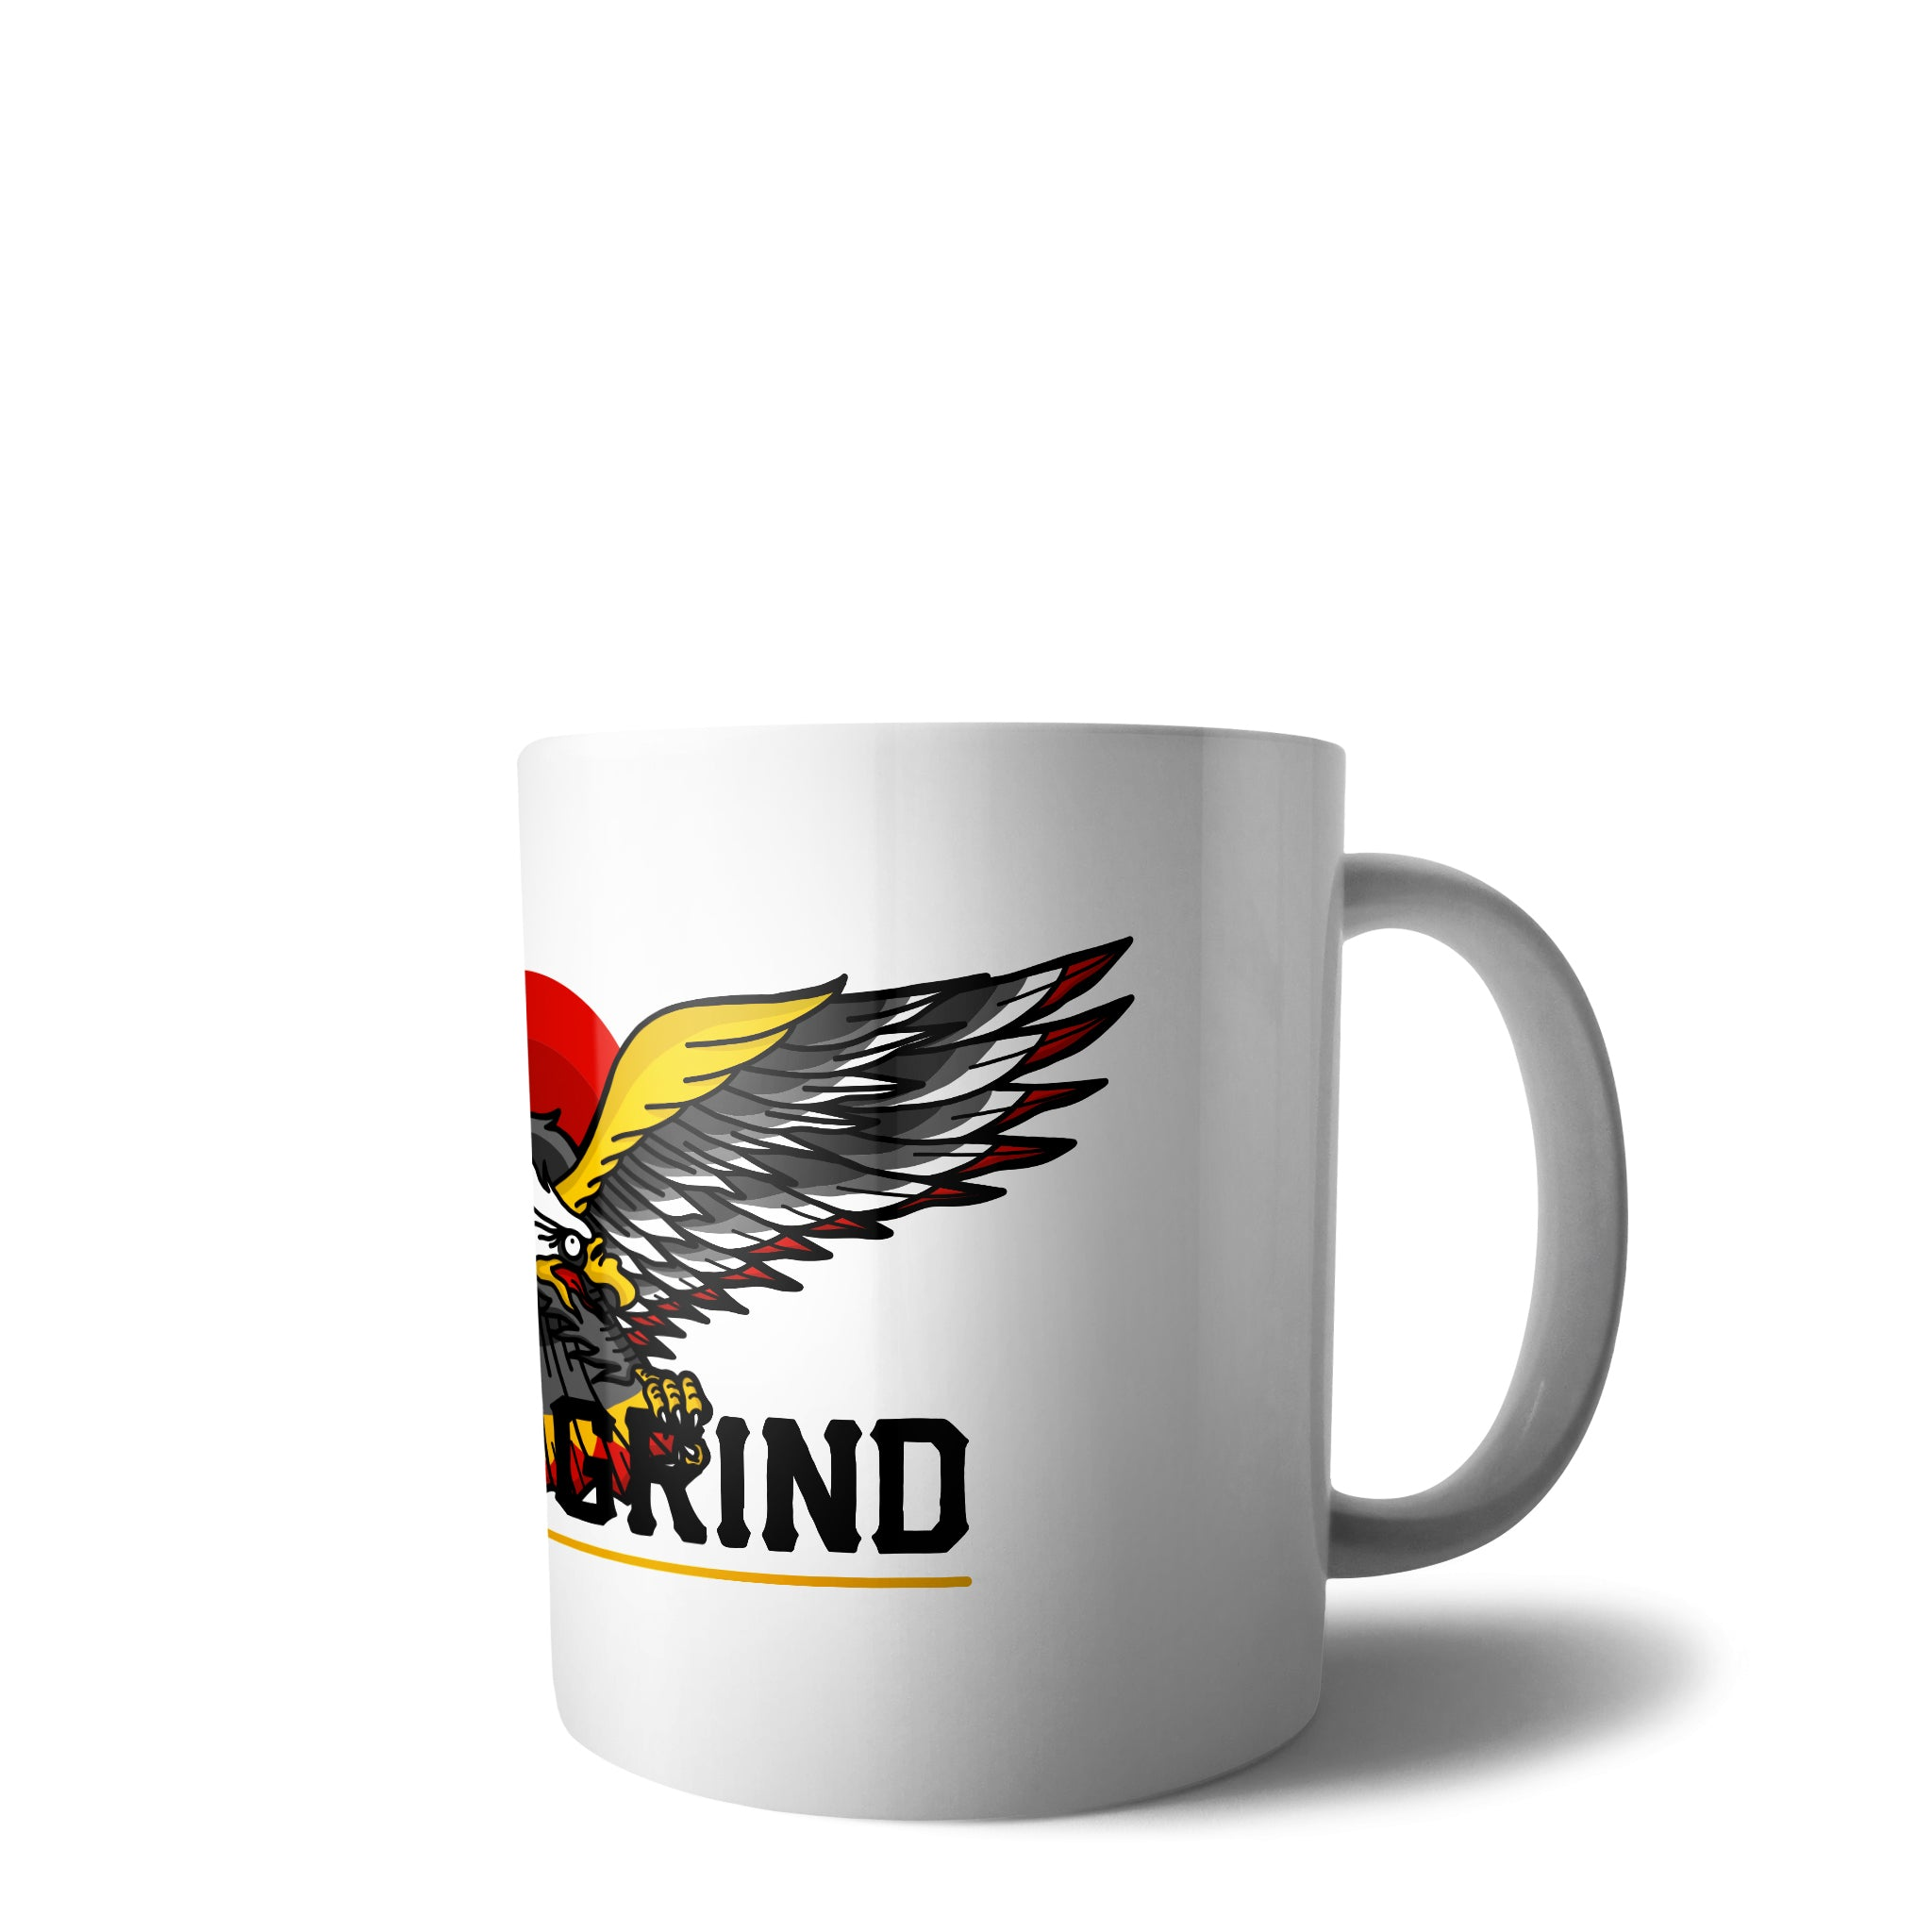 Daily Grind Eagle Mug | Hard Grind